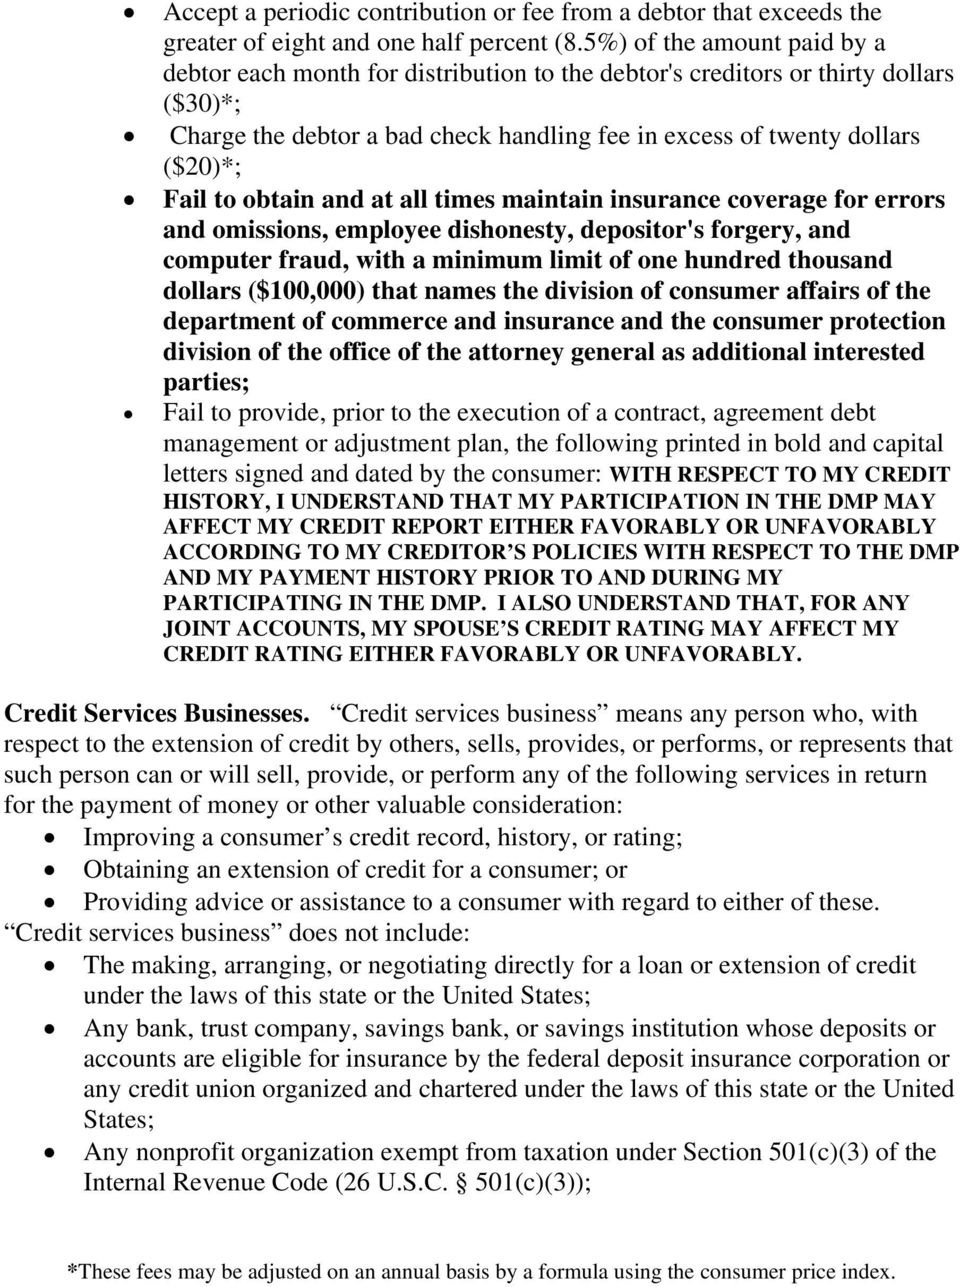 to obtain and at all times maintain insurance coverage for errors and omissions, employee dishonesty, depositor's forgery, and computer fraud, with a minimum limit of one hundred thousand dollars